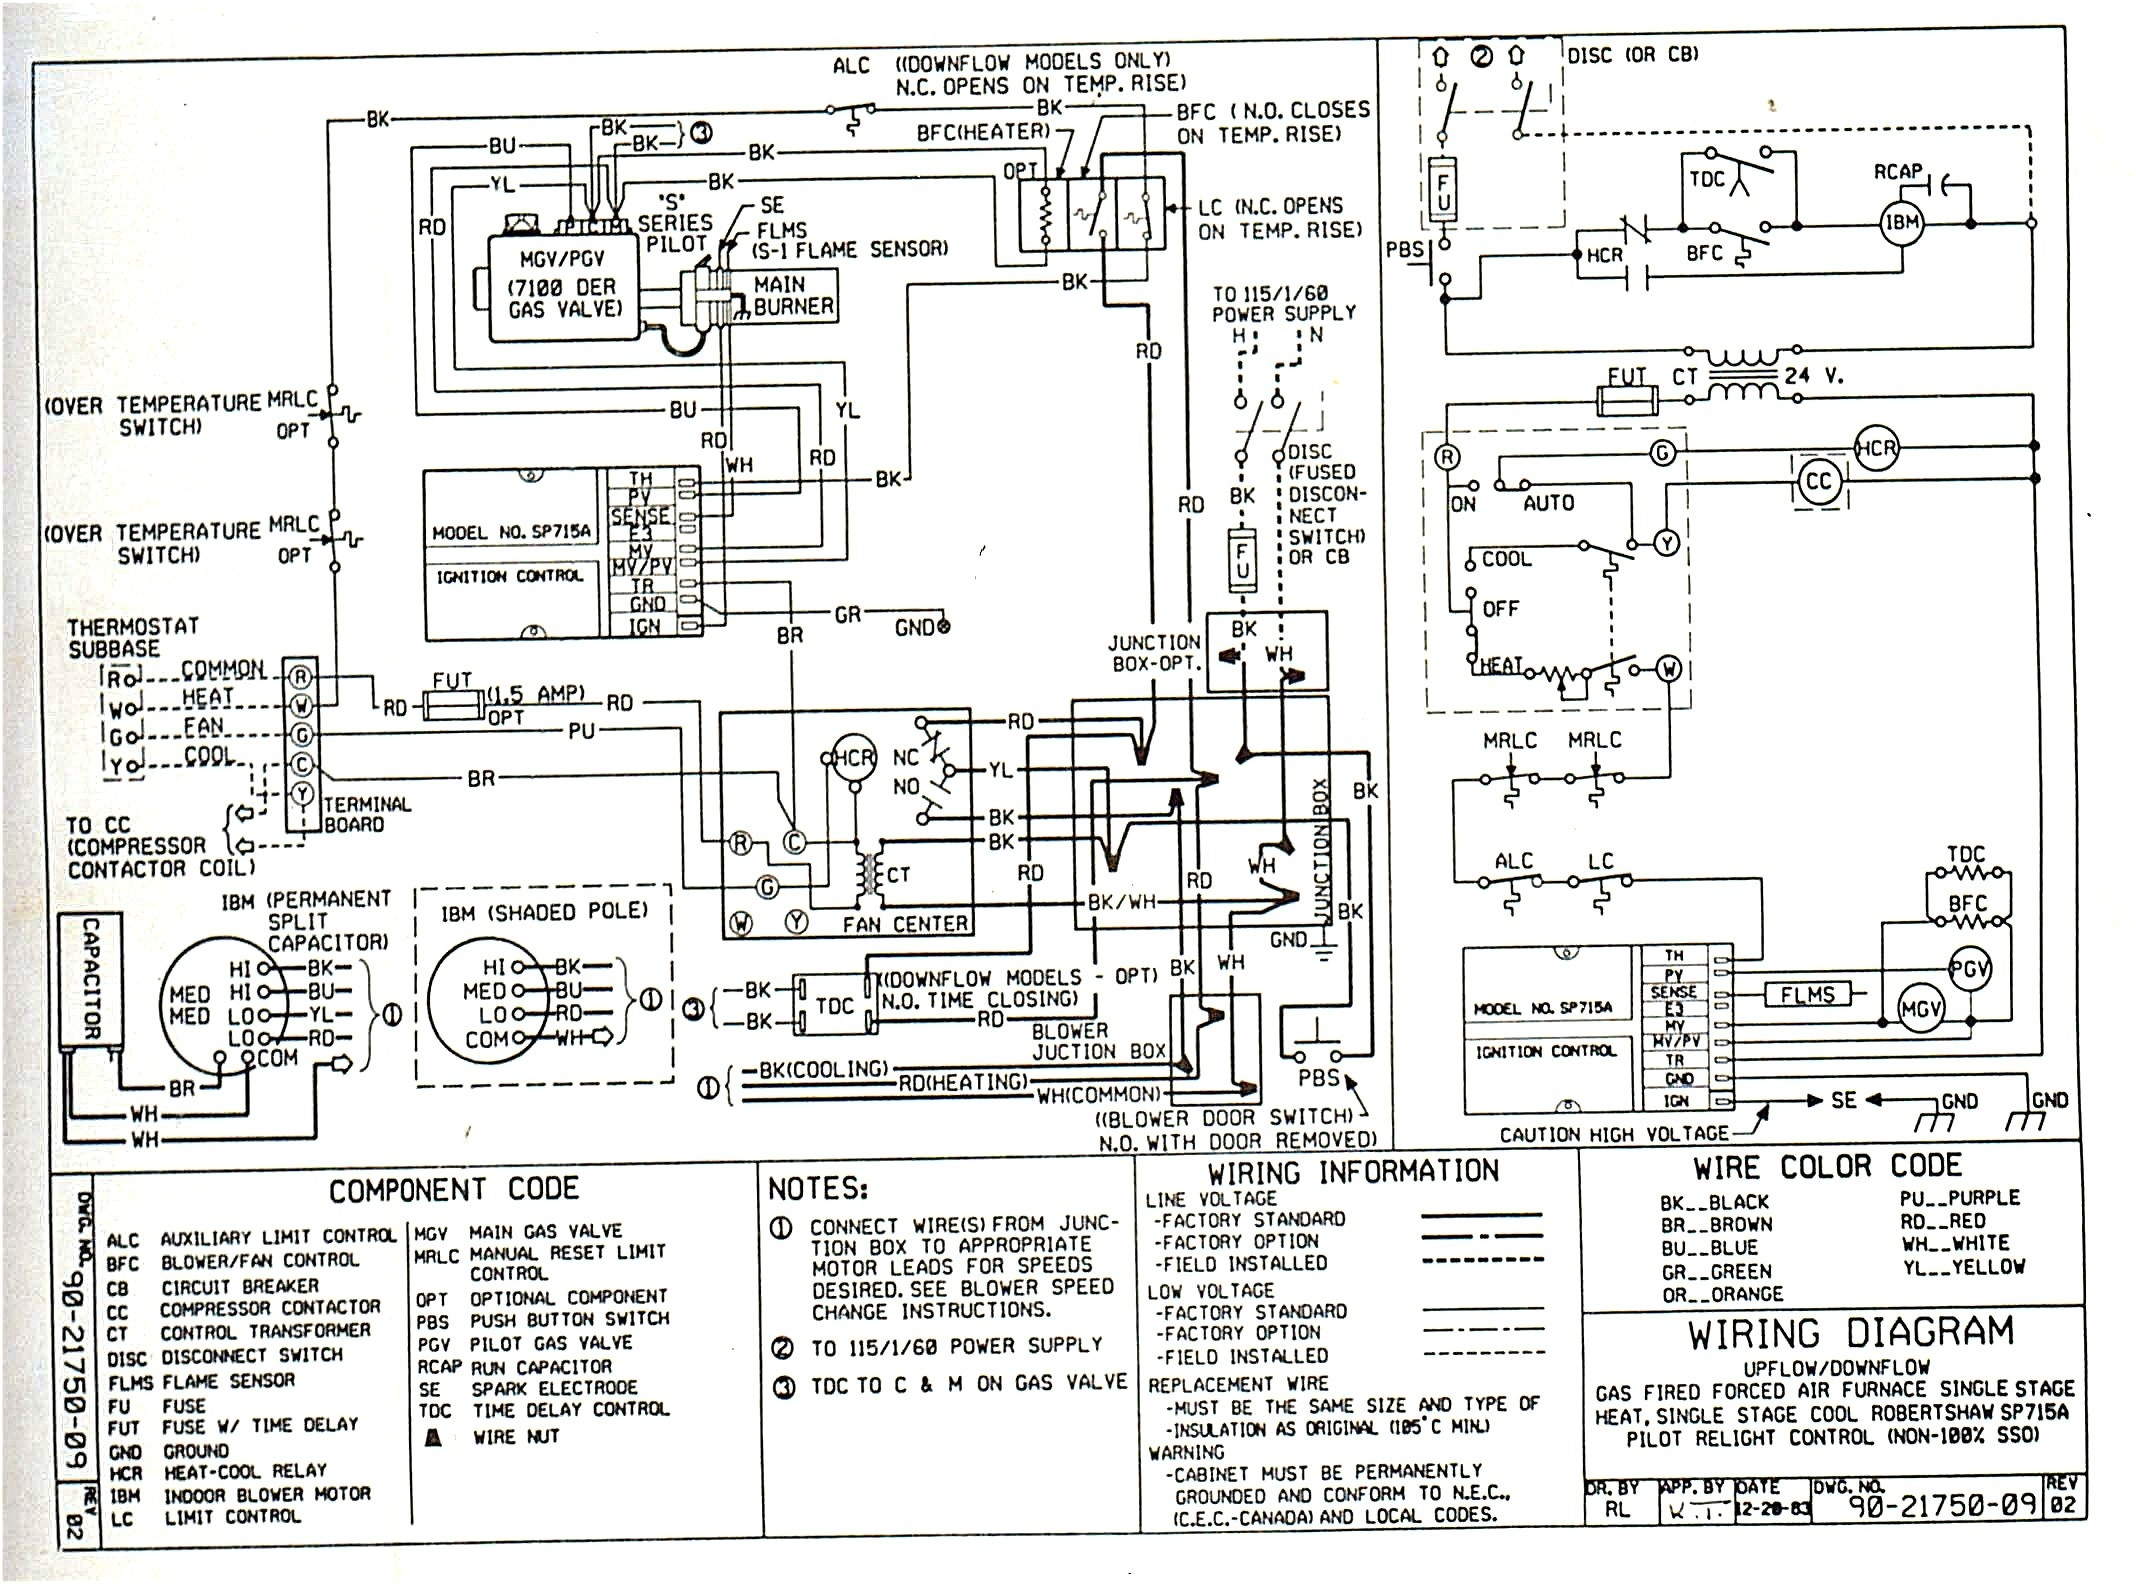 carrier heating thermostat wiring diagram free download tempstar heat pump wiring diagram | free wiring diagram #13